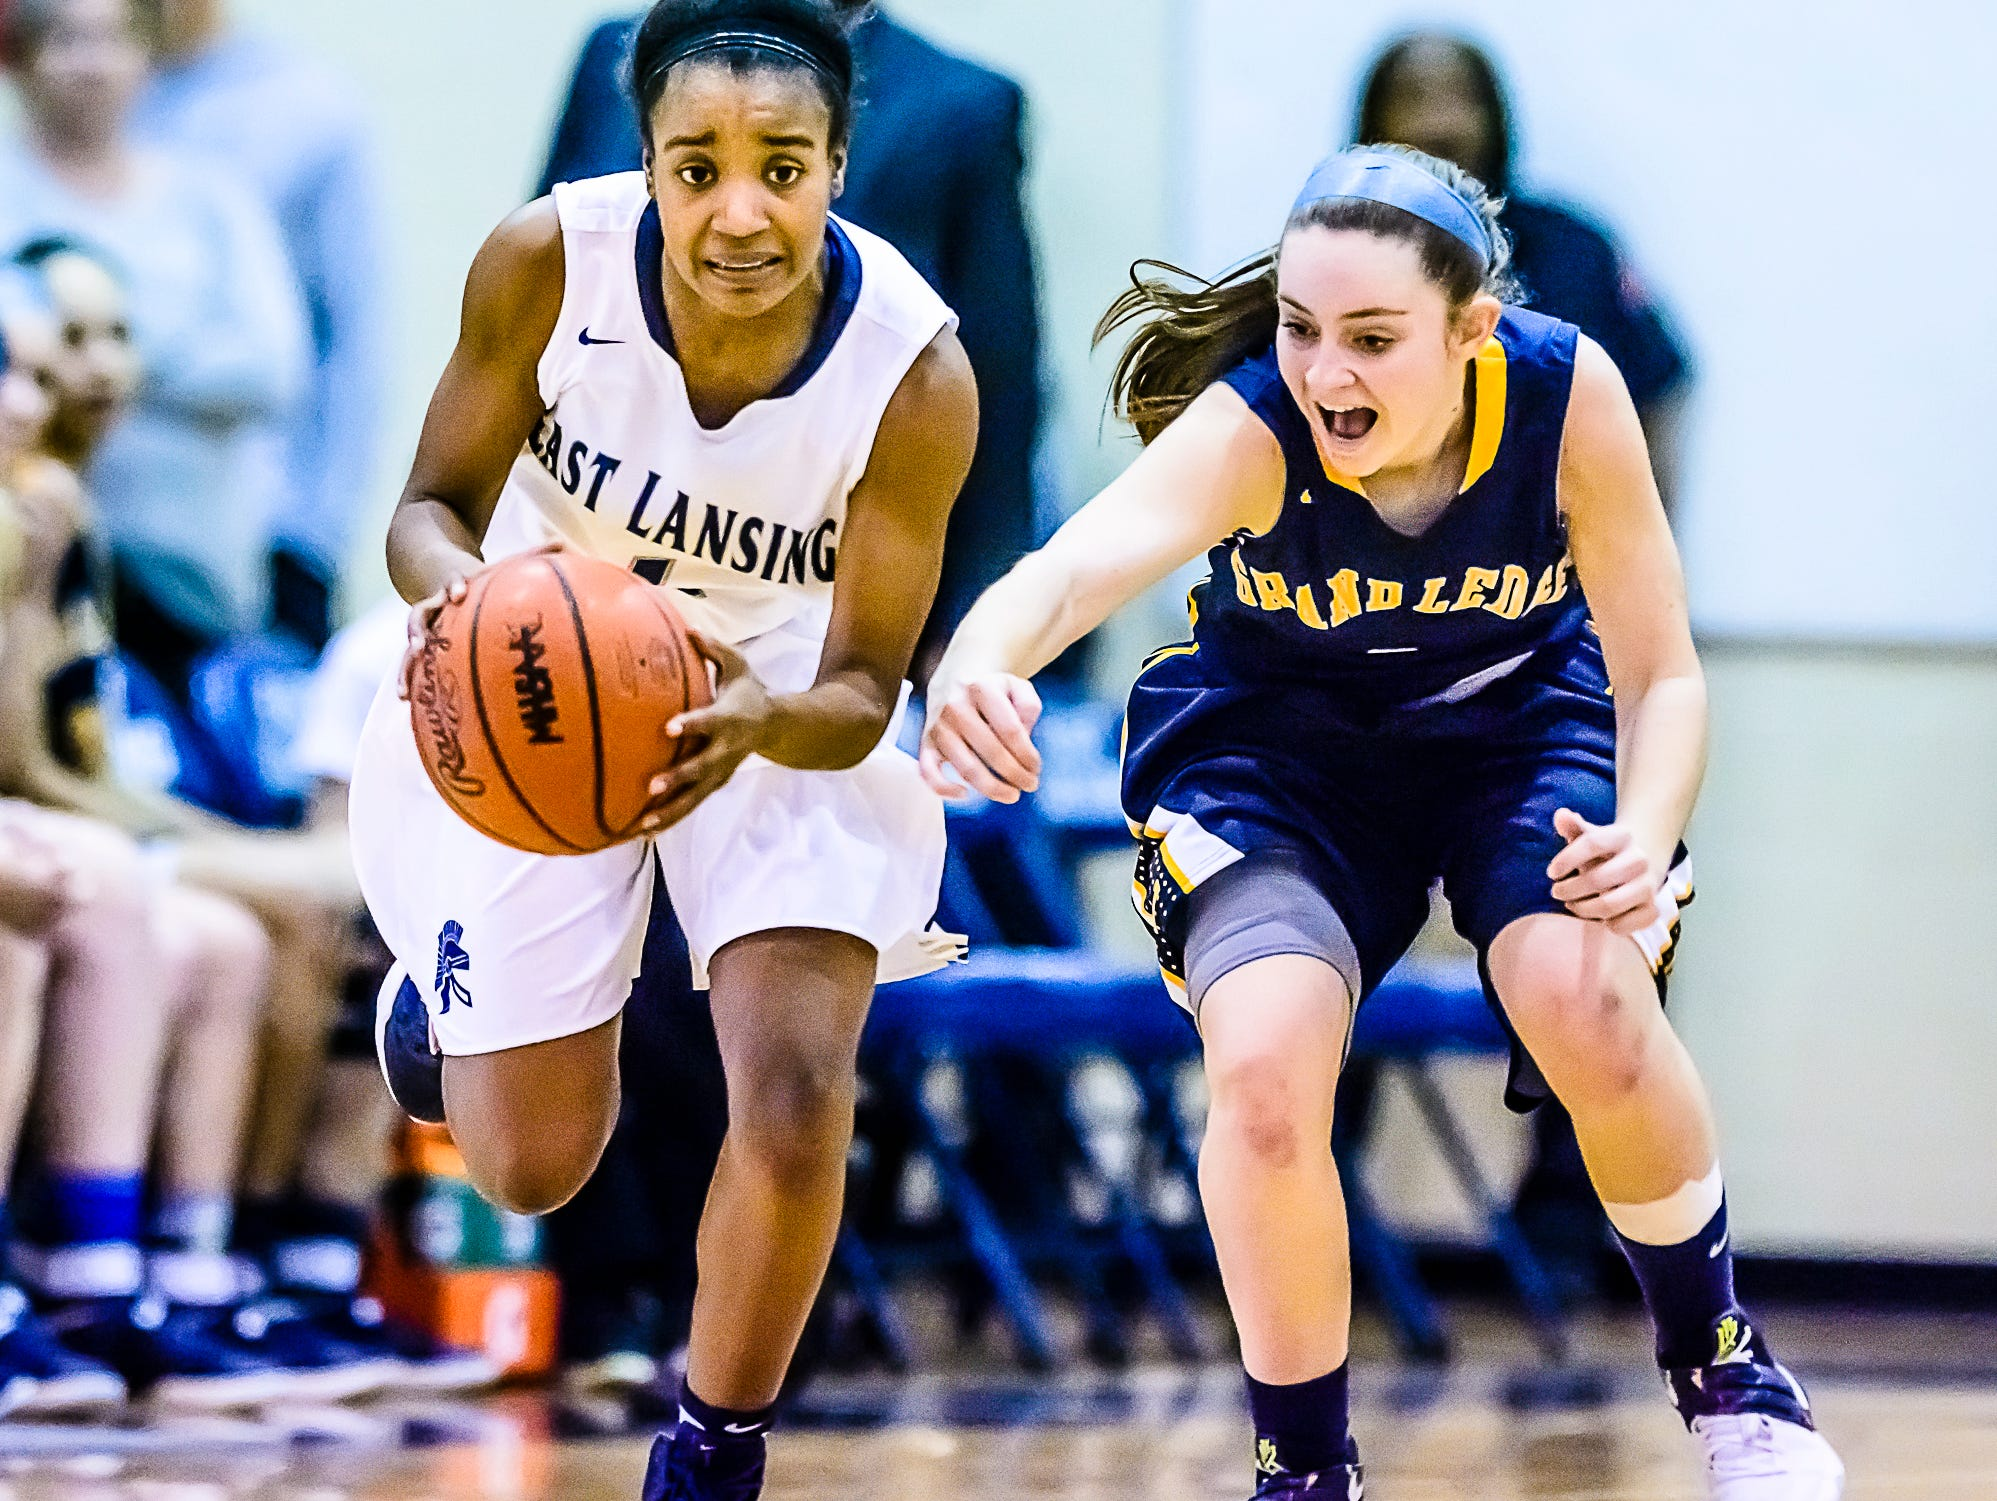 Sanaya Gregory ,left, of East Lansing steals the ball from Mackenzie Todd of Grand Ledge during their district semifinal game Wednesday March 1, 2017 at East Lansing High School. KEVIN W. FOWLER PHOTO